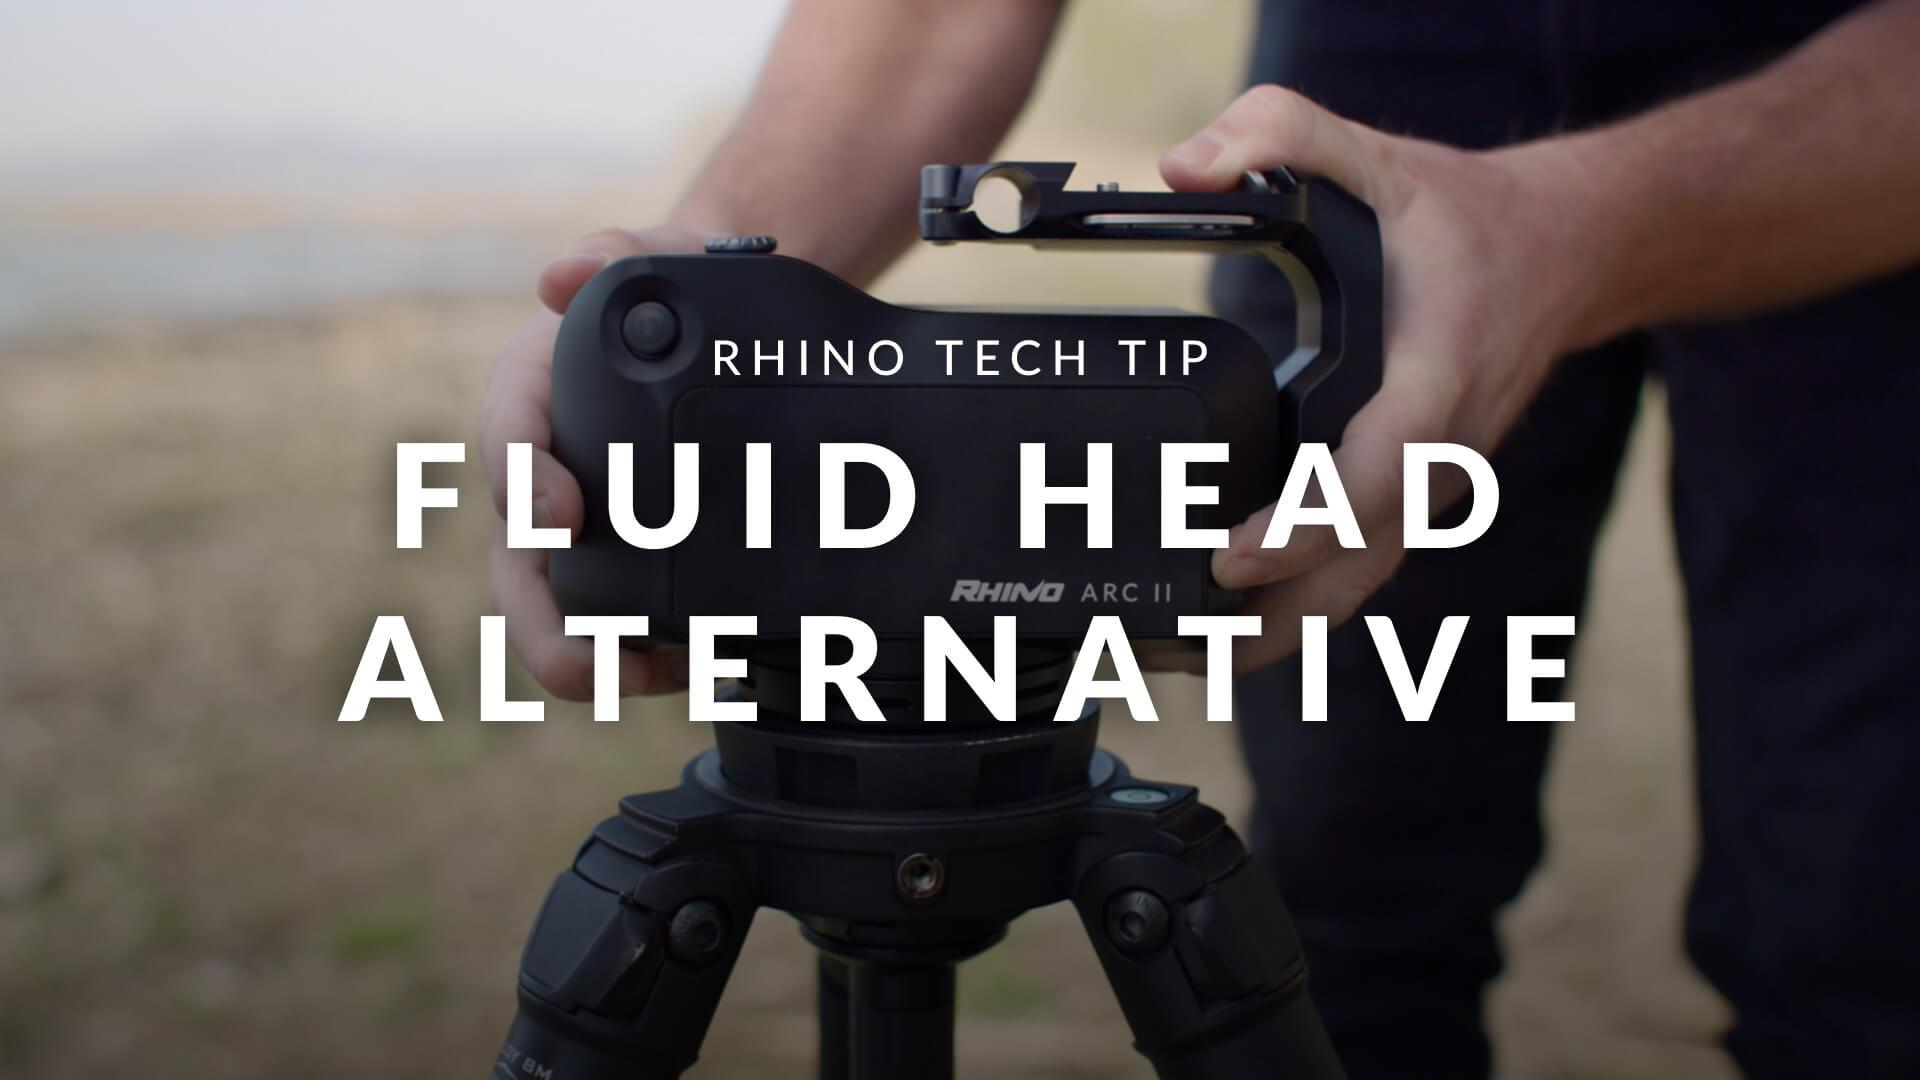 Rhino Arc II: Alternative to Your Fluid Head?